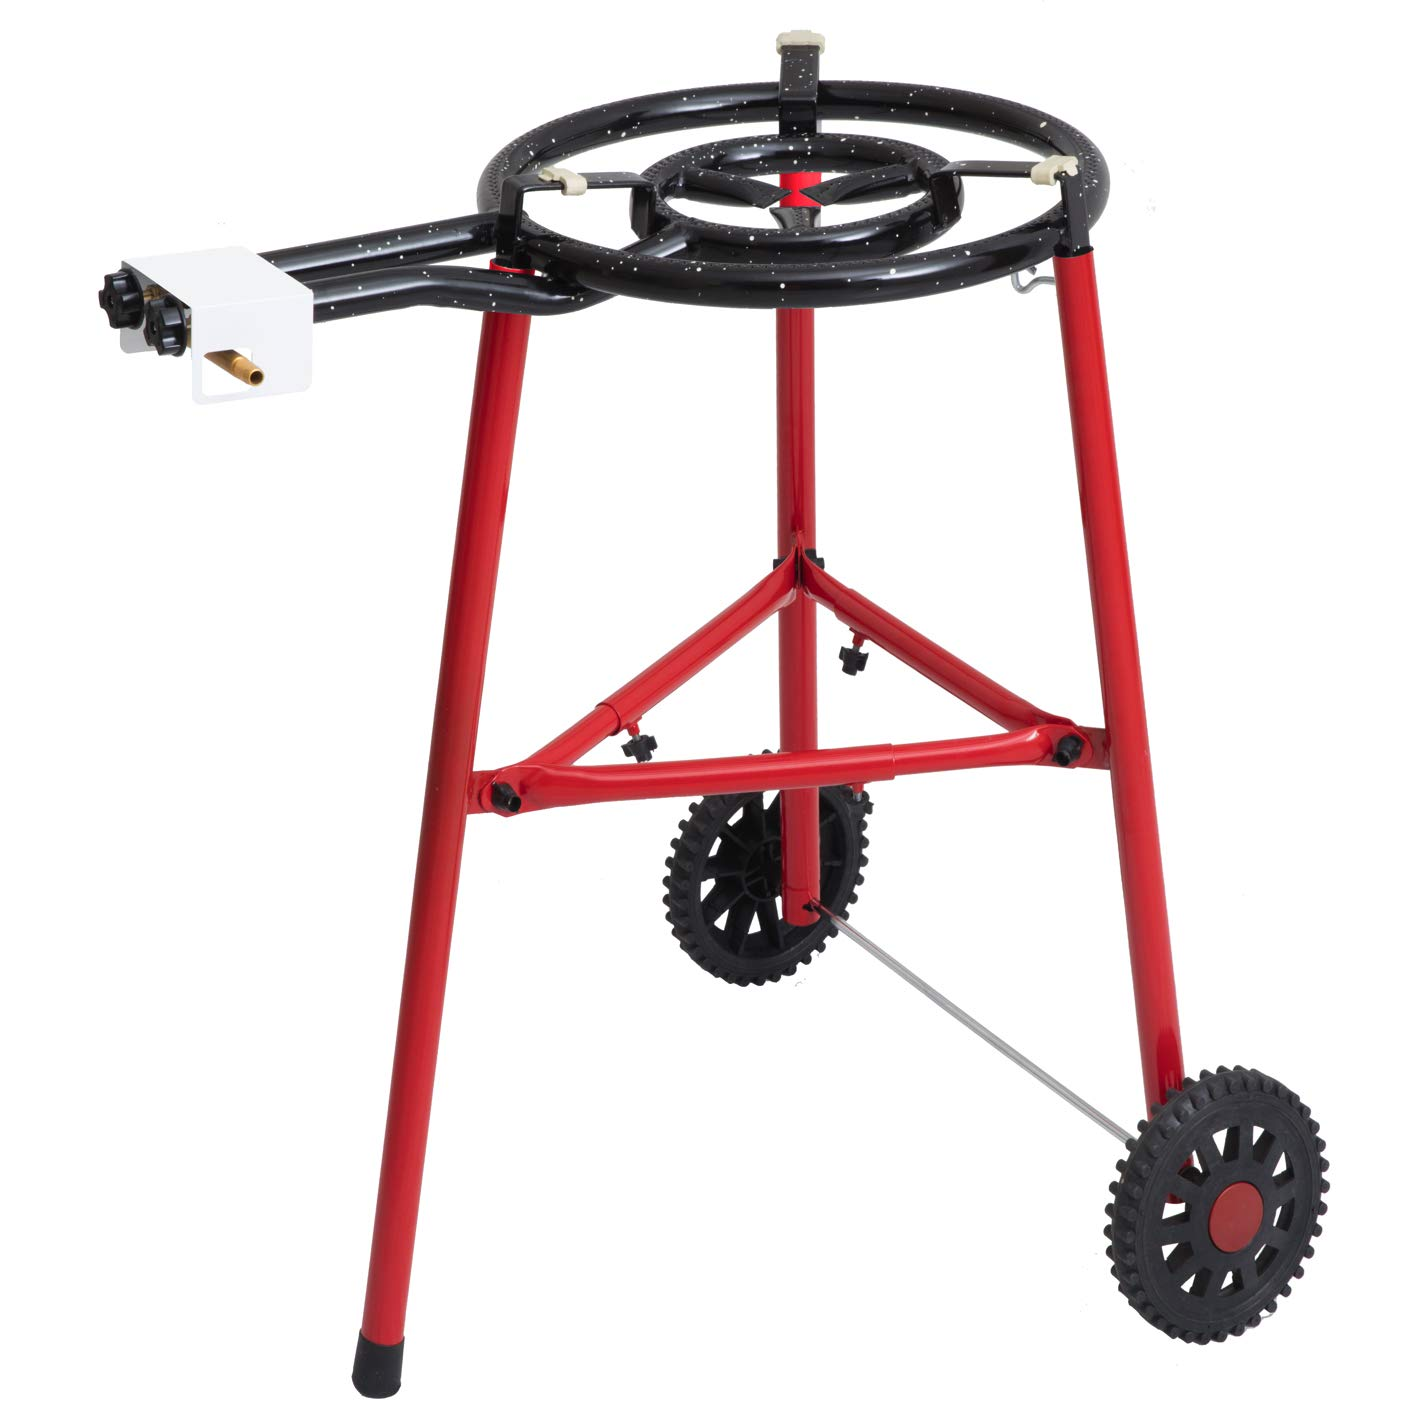 Paella Burner and Stand Set on Wheels Mabel Home Paella Pan Complete Paella Kit for up to 14 Servings 18 inch Enamaled Steel Paella Pan 15.75 inch Gas Burner